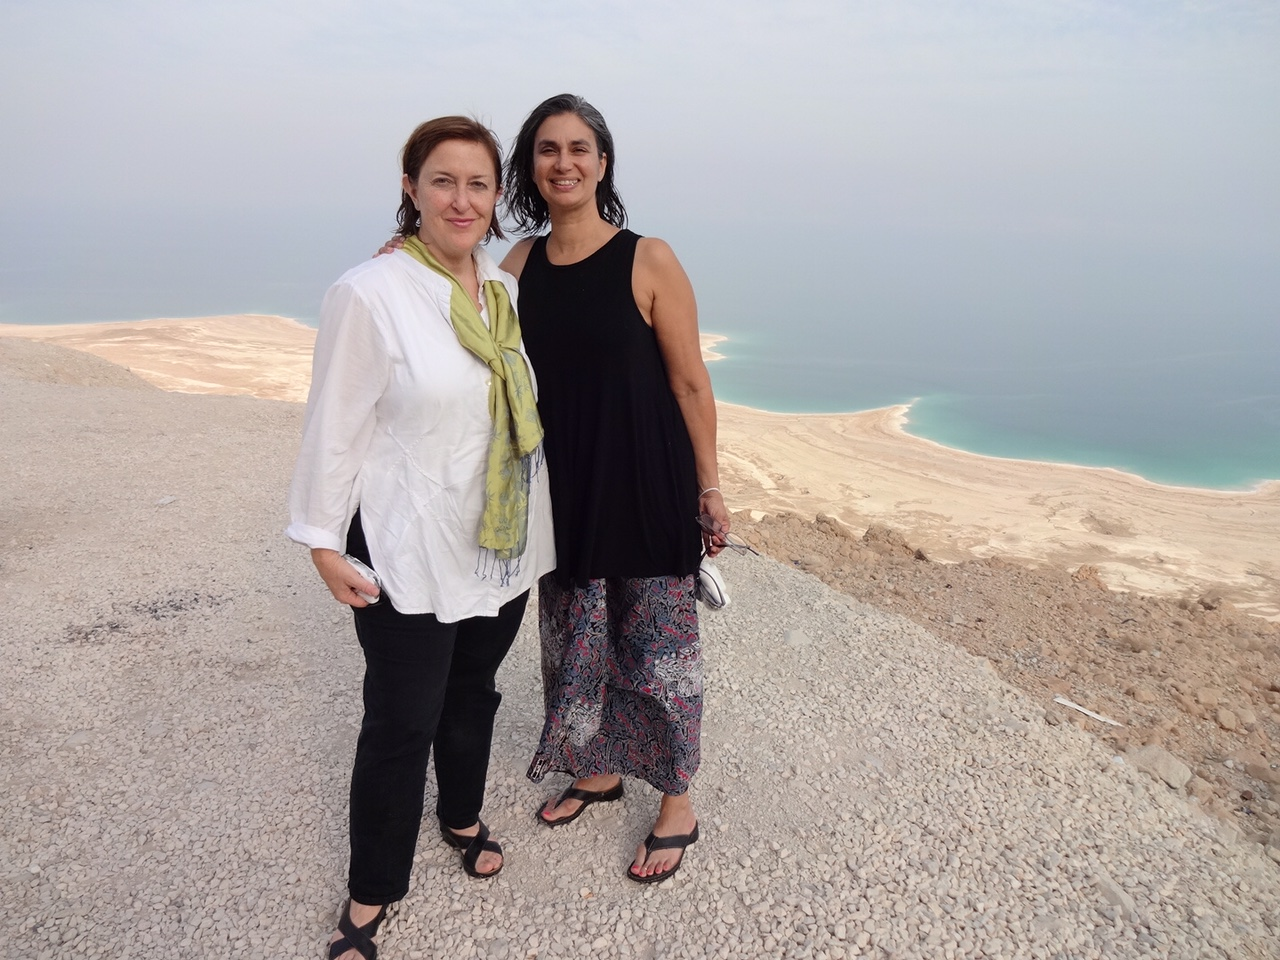 Diana C. Stoll and Michelle Dunn Marsh at the Dead Sea